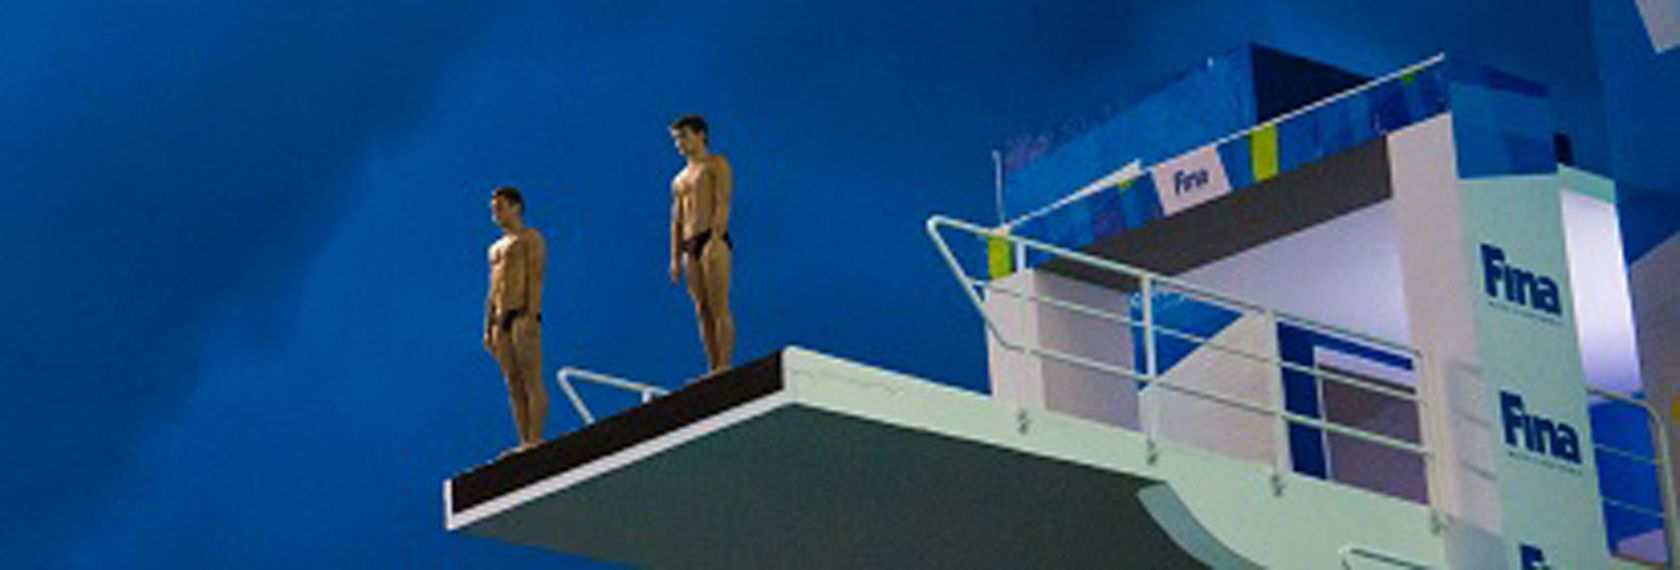 Tom Daley and Dan Goodfellow Rio.jpg